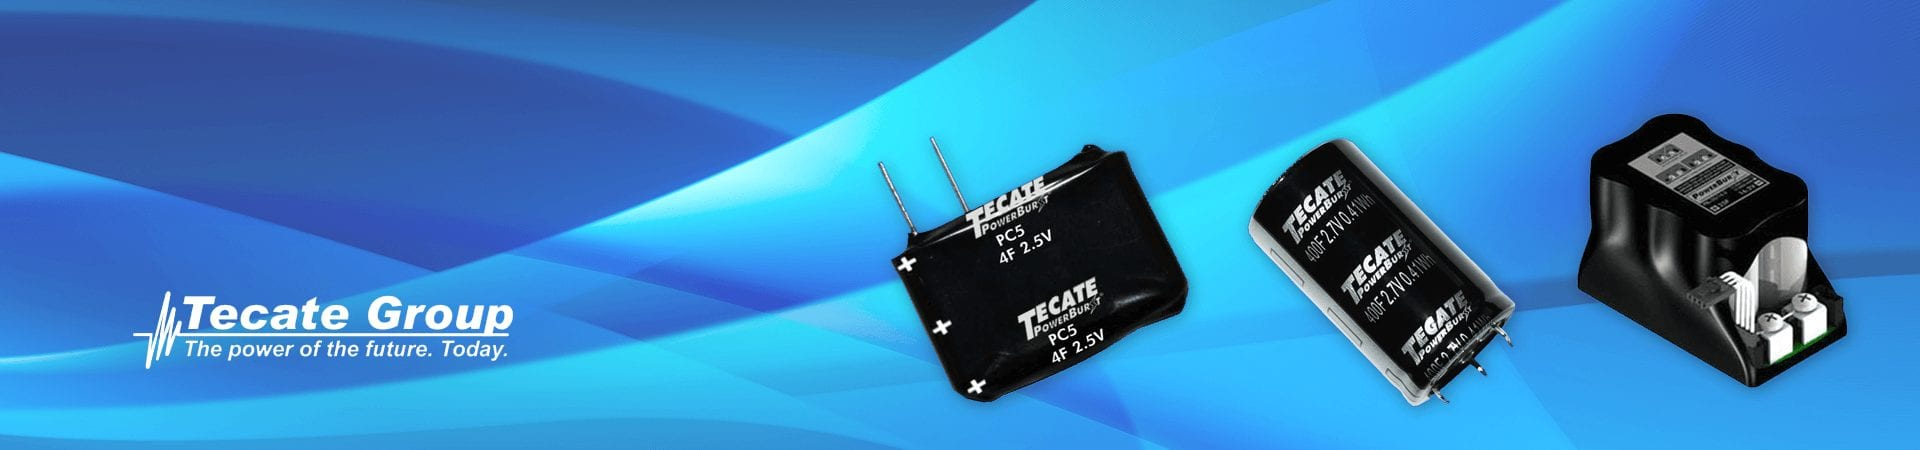 Ultracapacitor Modules, Ultracapacitor Cells, and Capacitors by Tecate Group